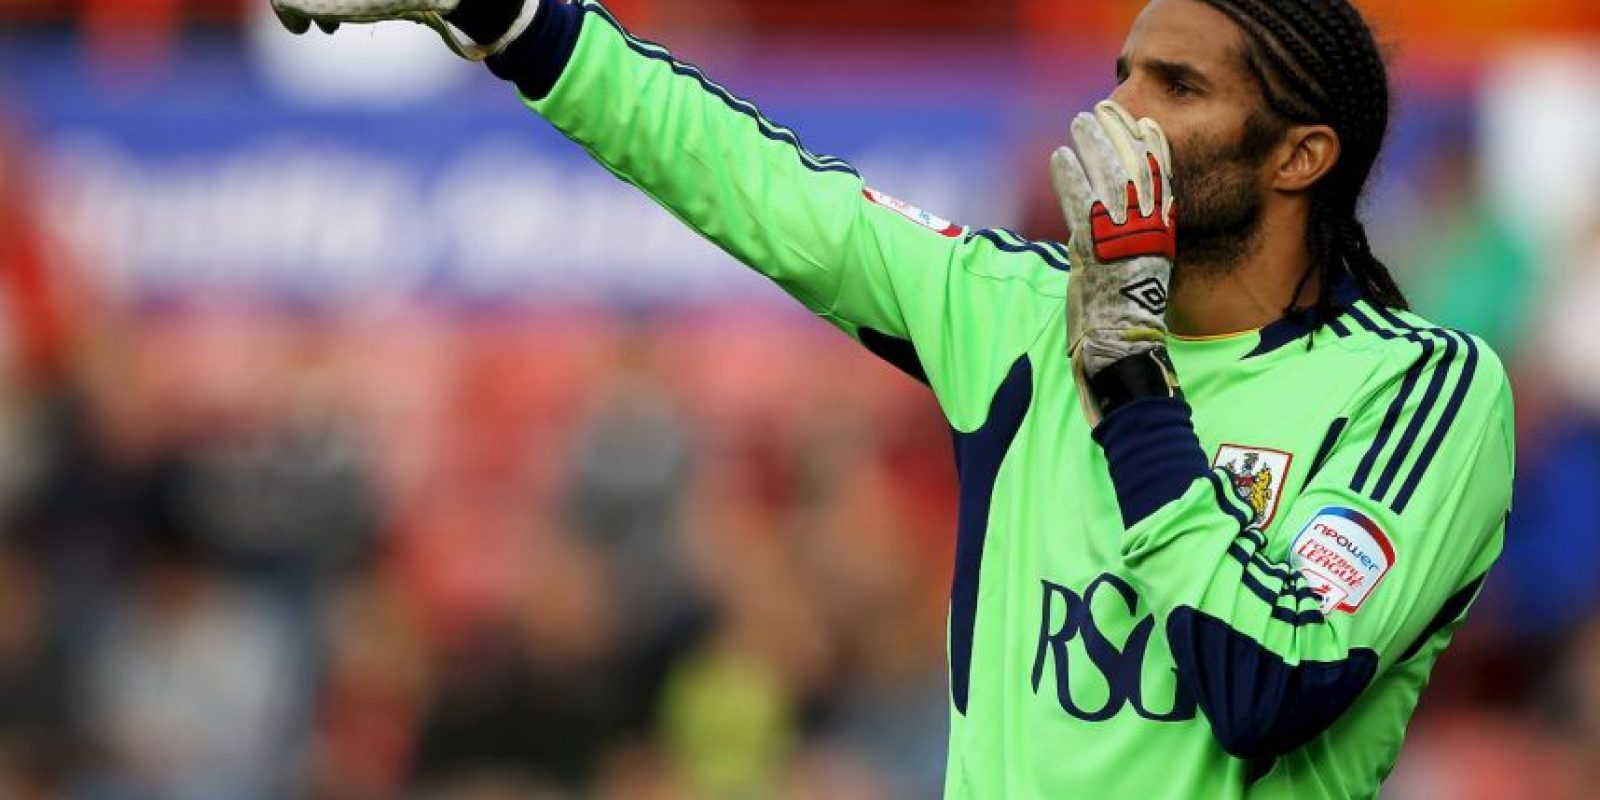 Se trata de David James Foto: Getty